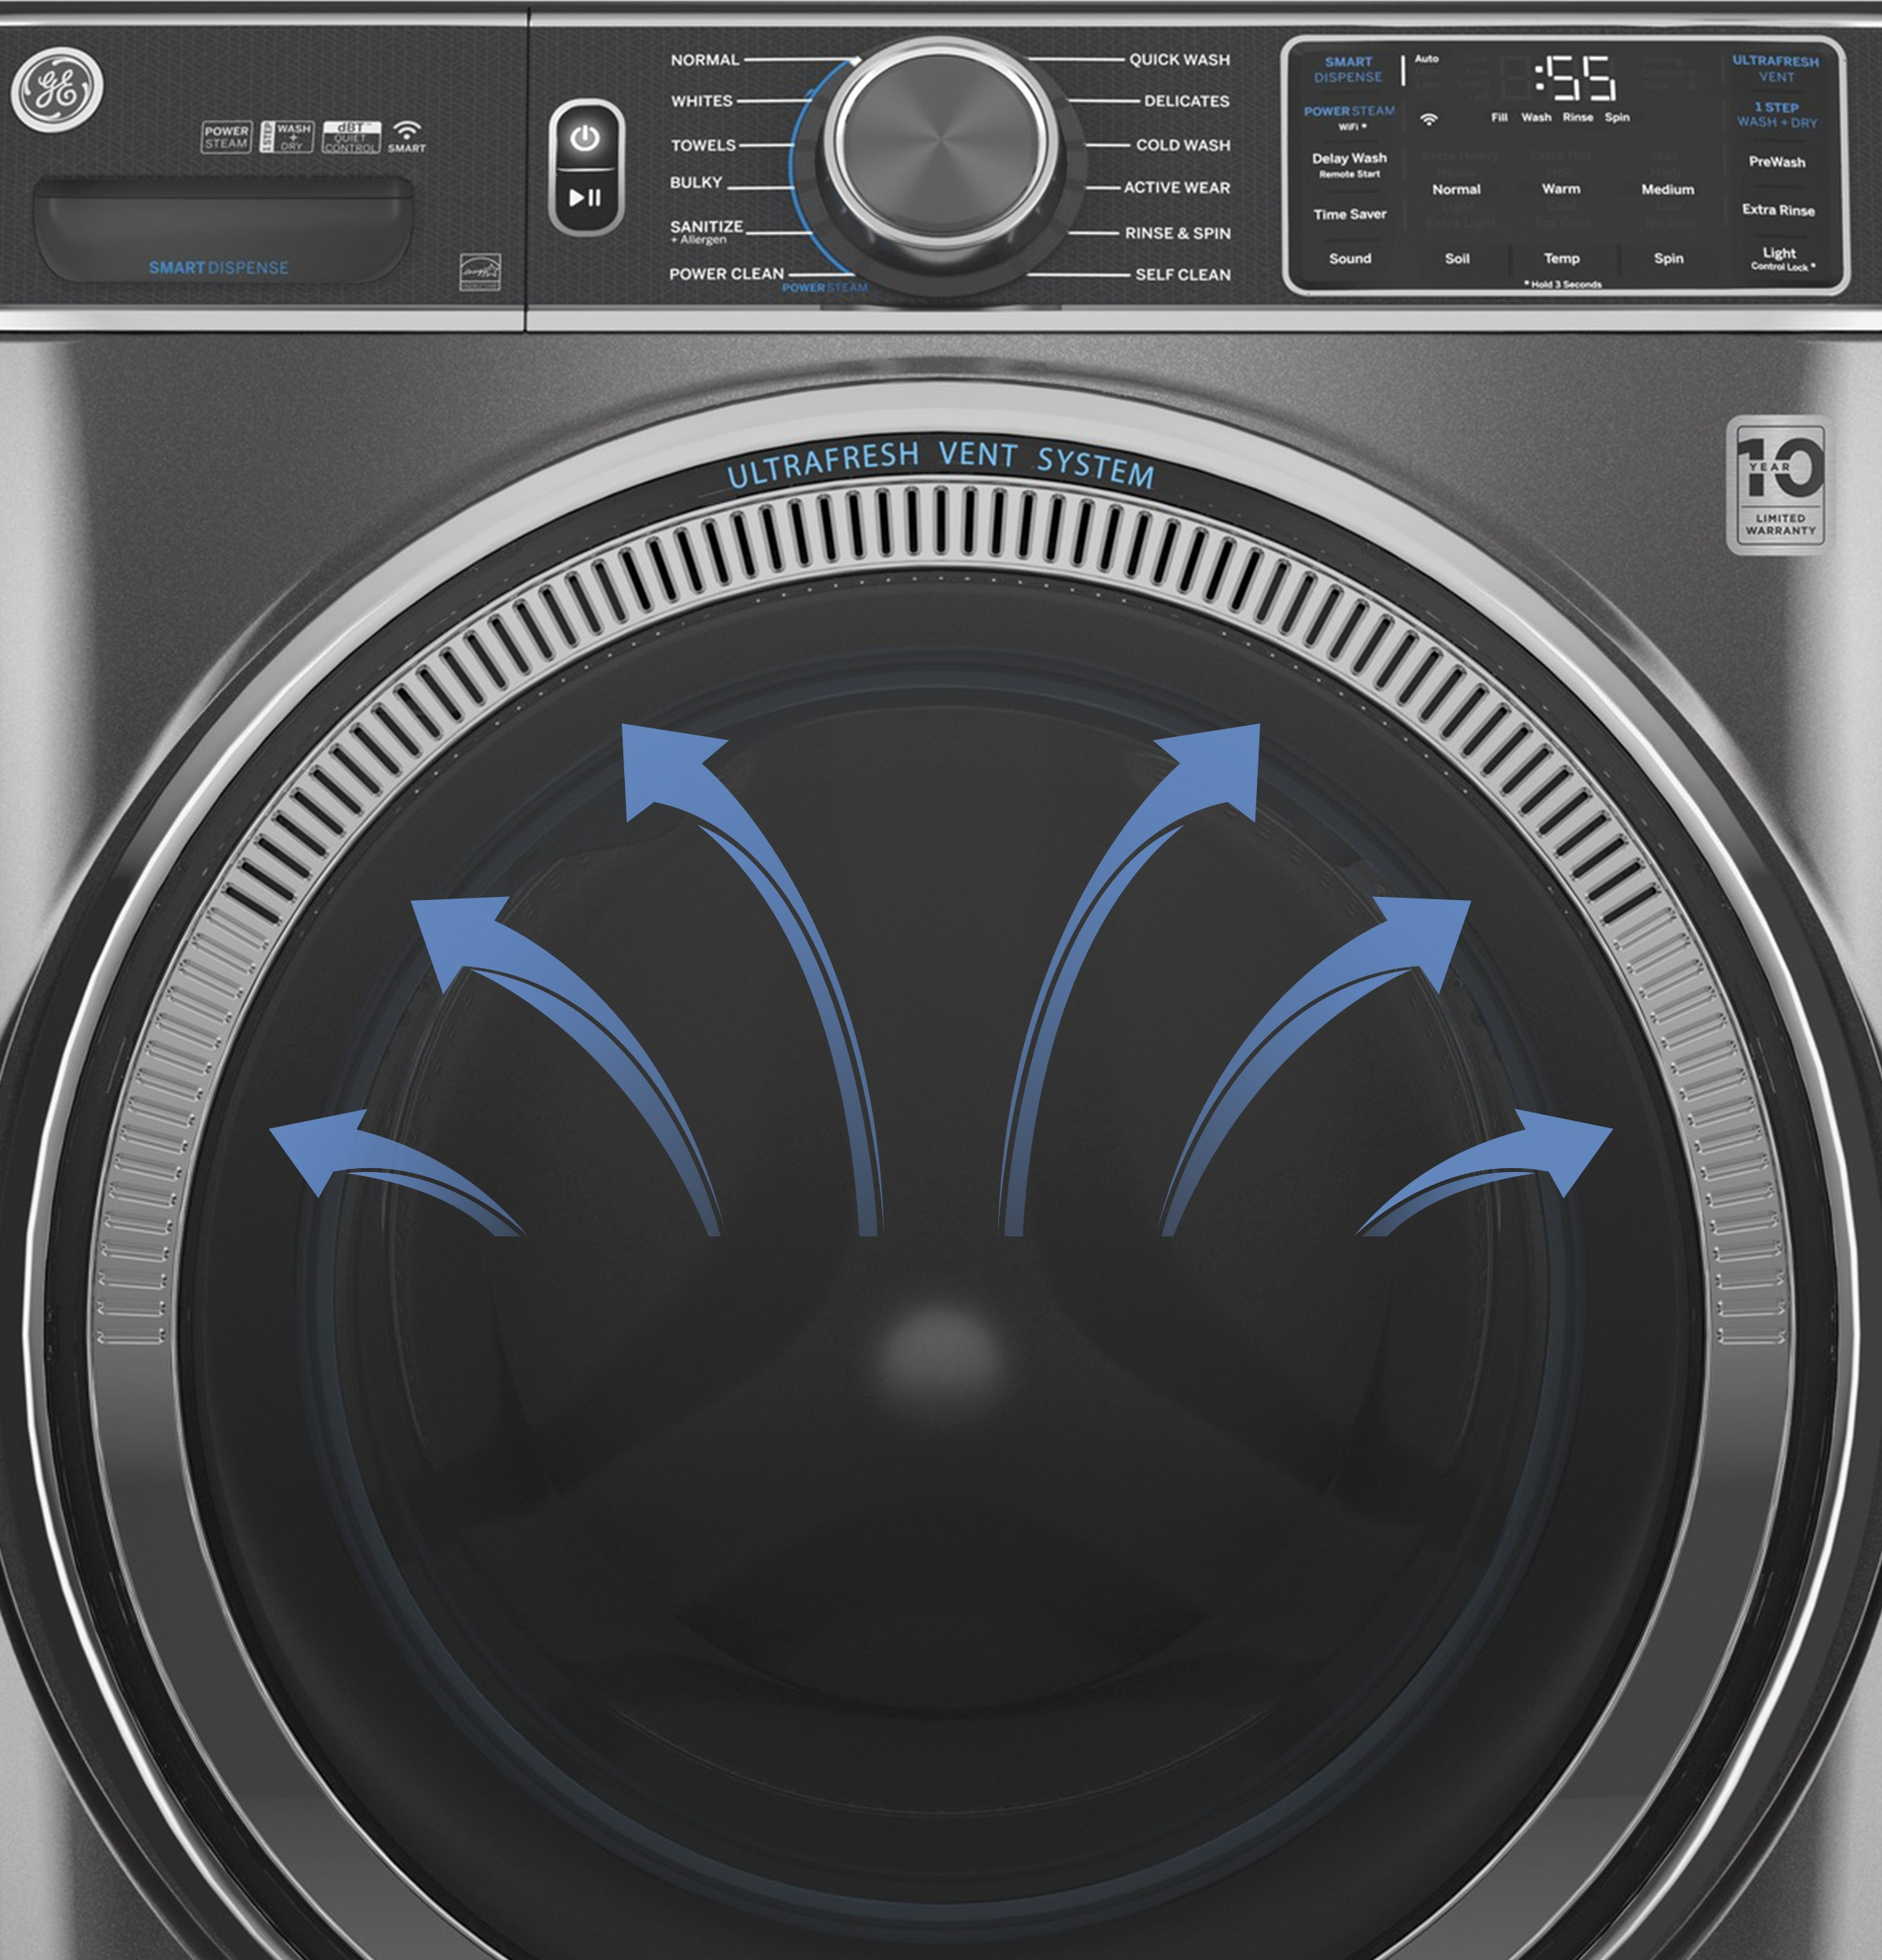 Model: GFW550SPNDG   GE GE® 4.8 cu. ft. Capacity Smart Front Load ENERGY STAR® Washer with UltraFresh Vent System with OdorBlock™ and Sanitize w/Oxi